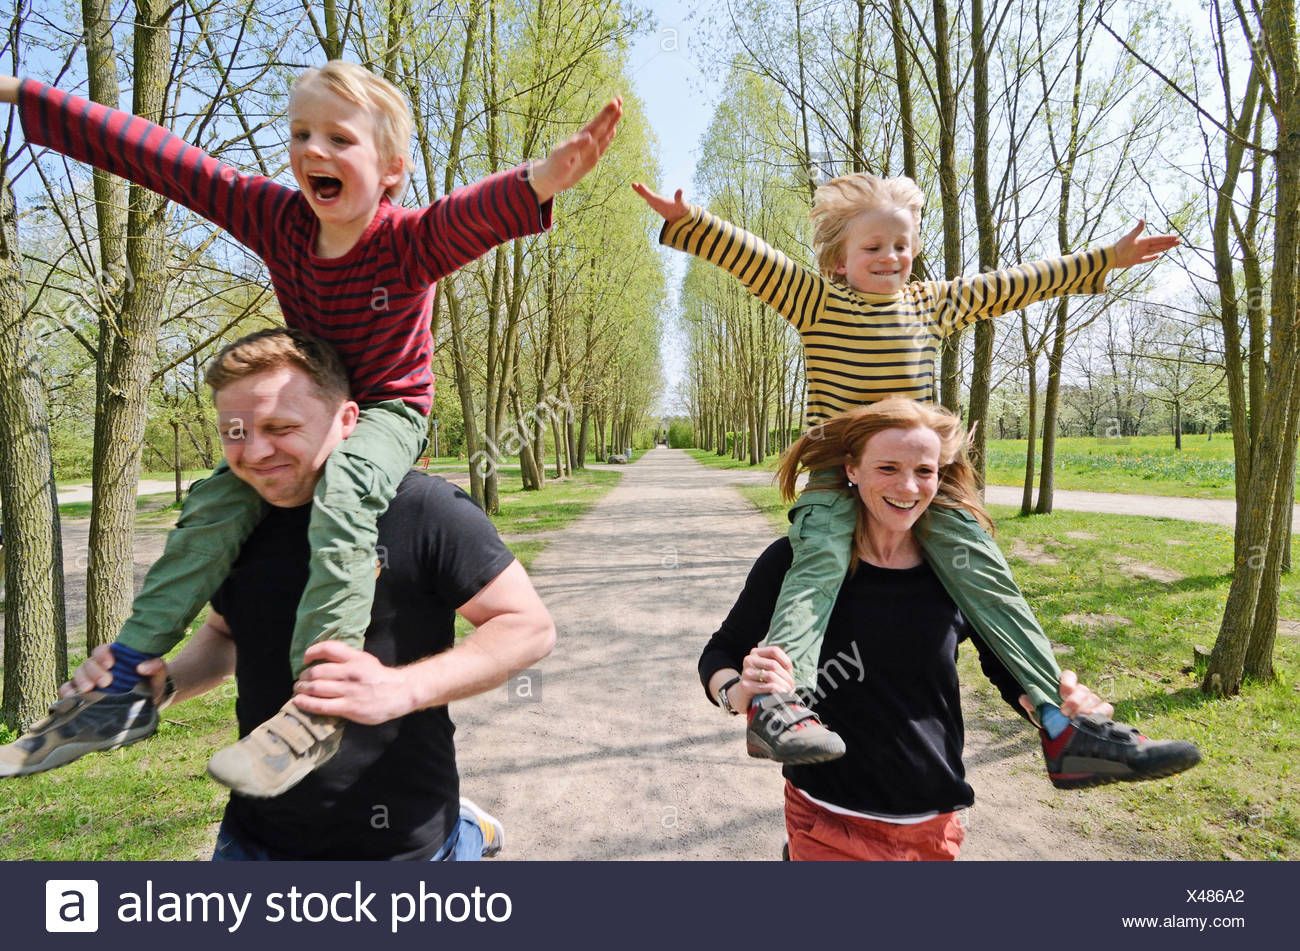 Mother and father racing with two boys on shoulders through park - Stock Image